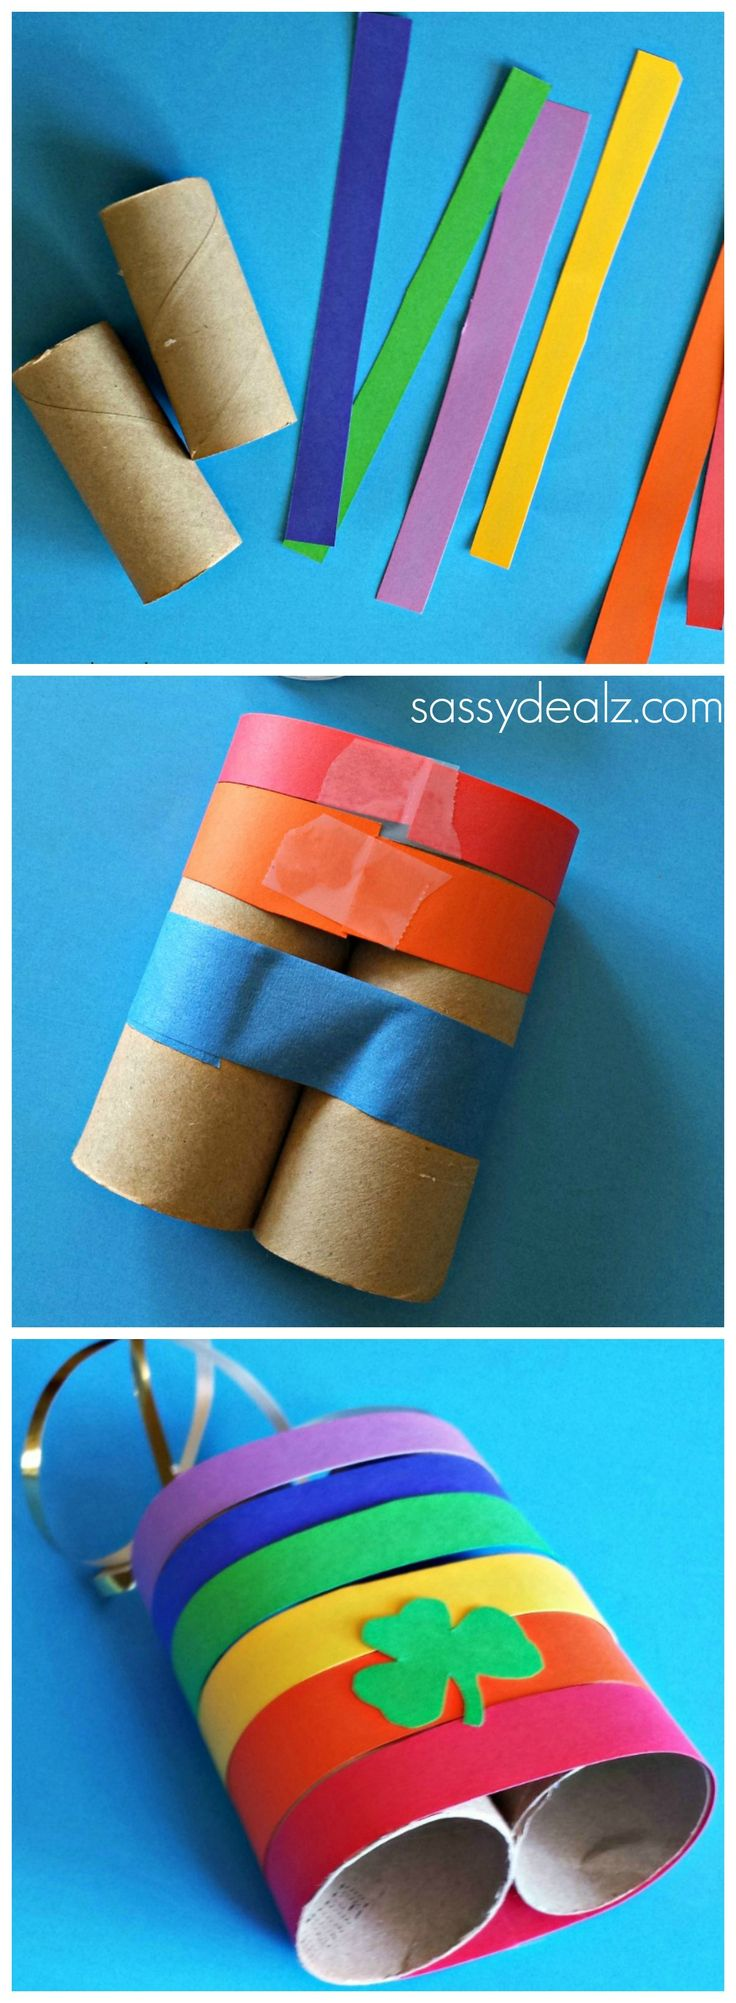 503 best images about after school project ideas on pinterest for Paper roll projects